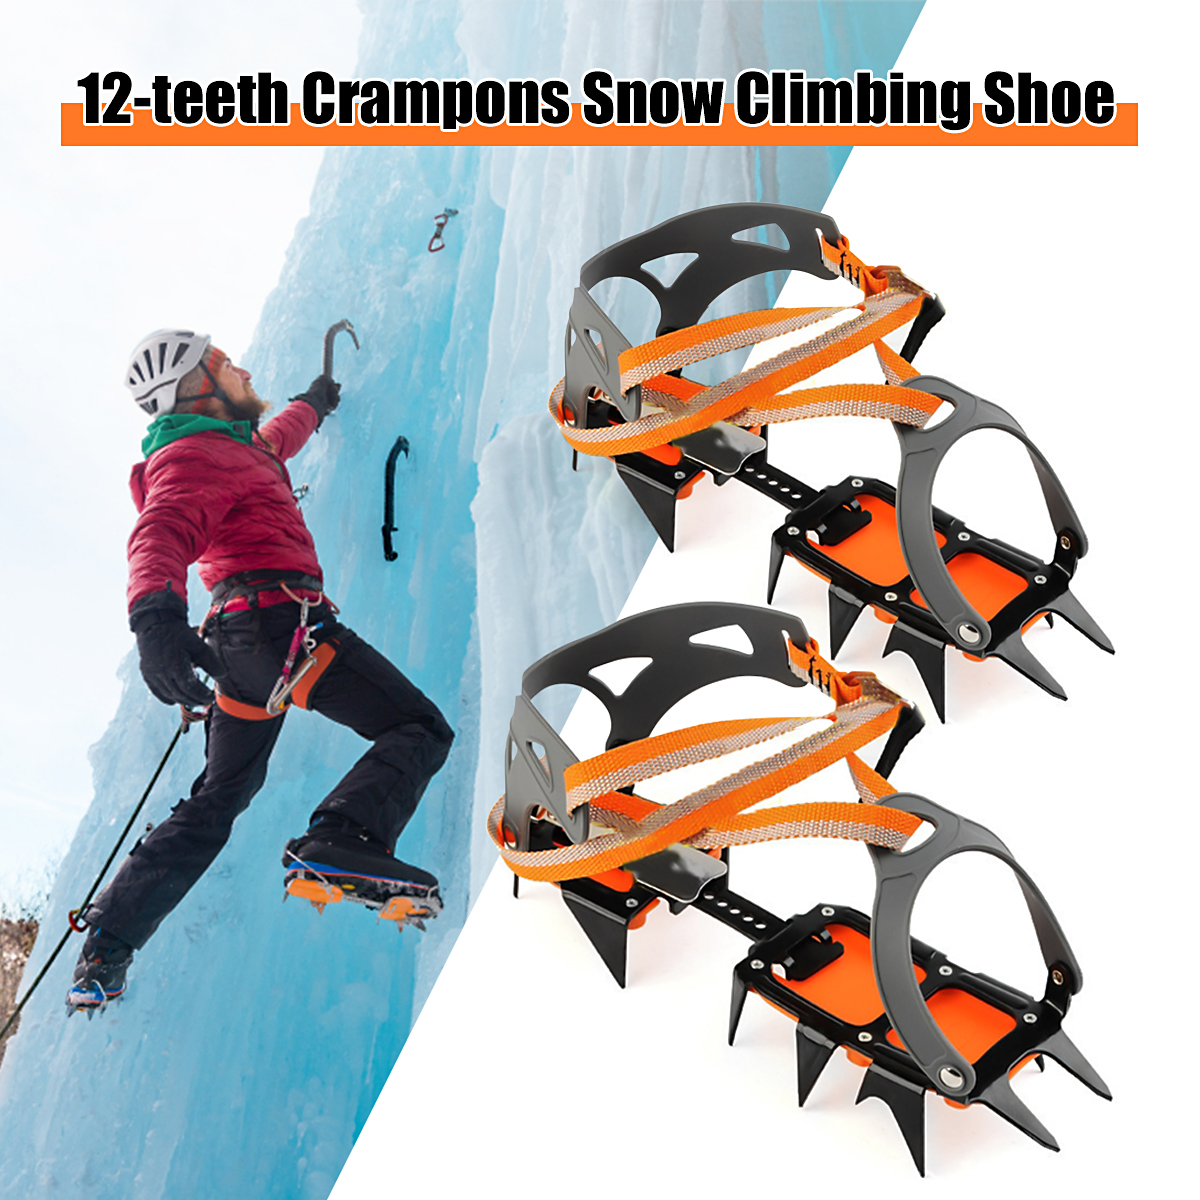 New arrival 1 Pair Ice Crampons Non-Slip Snow Shoe Spikes Grips Cleats crampons Winter Climbing Hiking Anti Slip Safety Tool quality m l size crampons 8 teeth outdoor mountaineering hiking antislip ice snow spikes shoe crampons shoe spikes skidproof